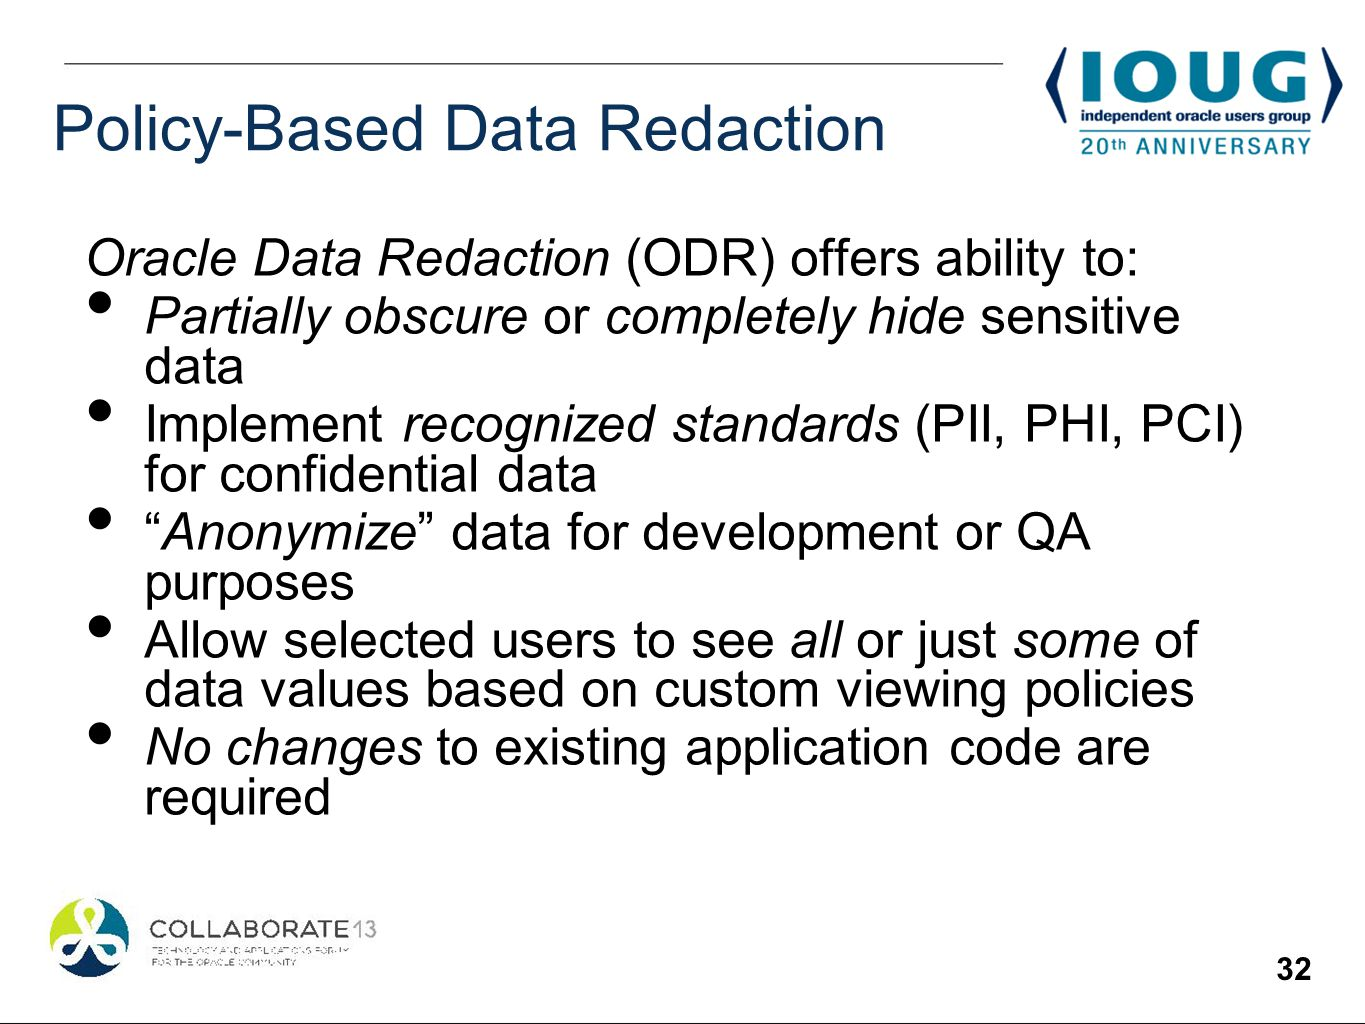 32 Policy-Based Data Redaction Oracle Data Redaction (ODR) offers ability to: Partially obscure or completely hide sensitive data Implement recognized standards (PII, PHI, PCI) for confidential data Anonymize data for development or QA purposes Allow selected users to see all or just some of data values based on custom viewing policies No changes to existing application code are required